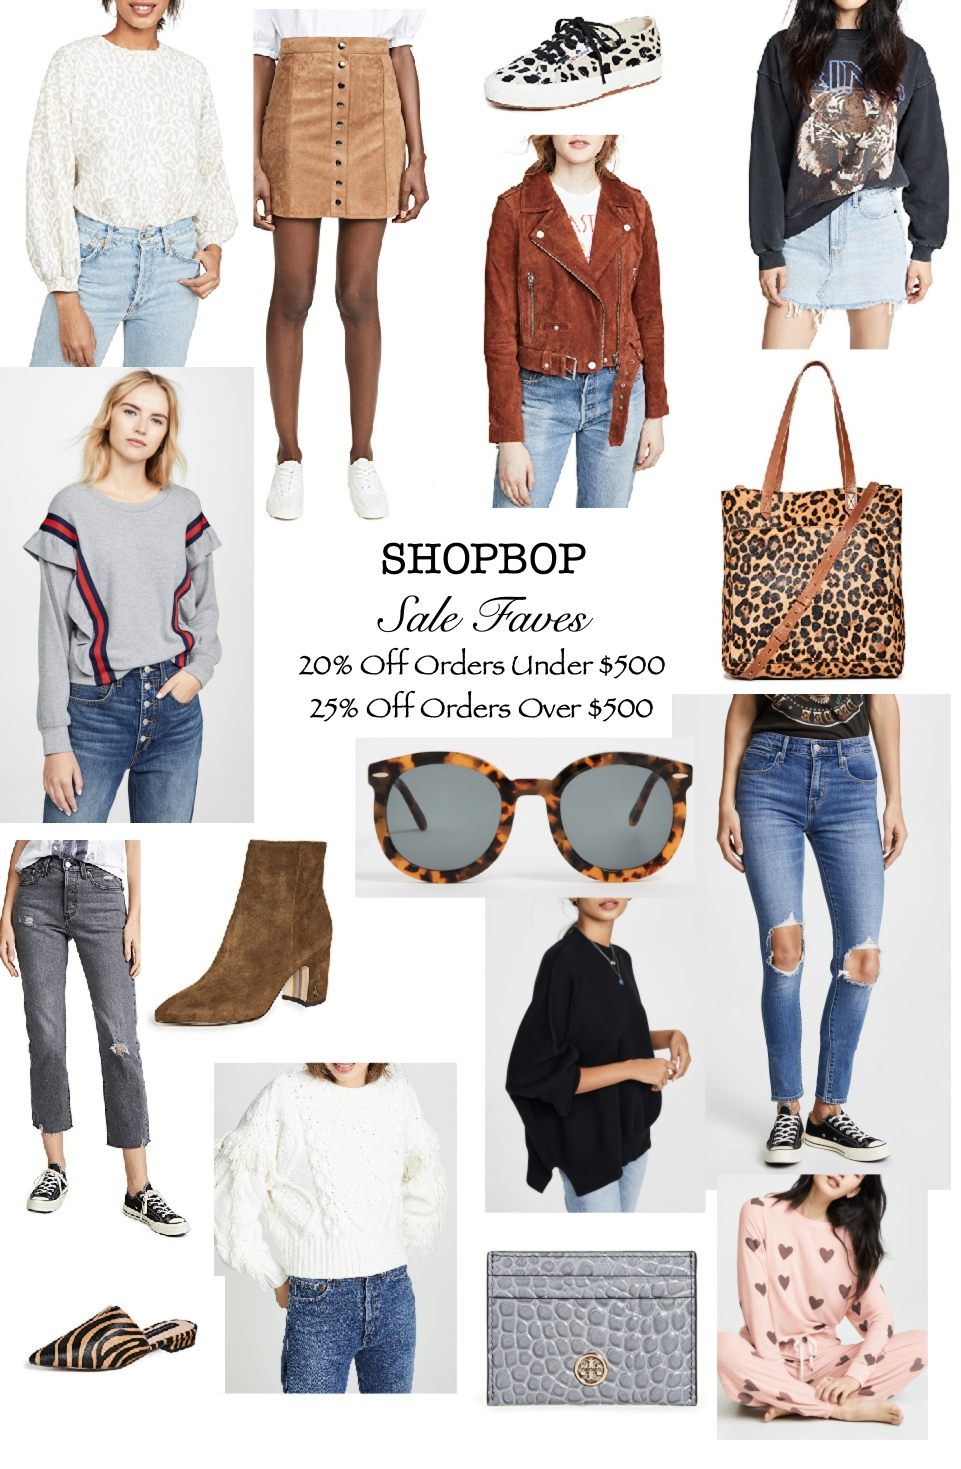 how to get new designer fashion at a discount, Shopbop, sale, fall fashion